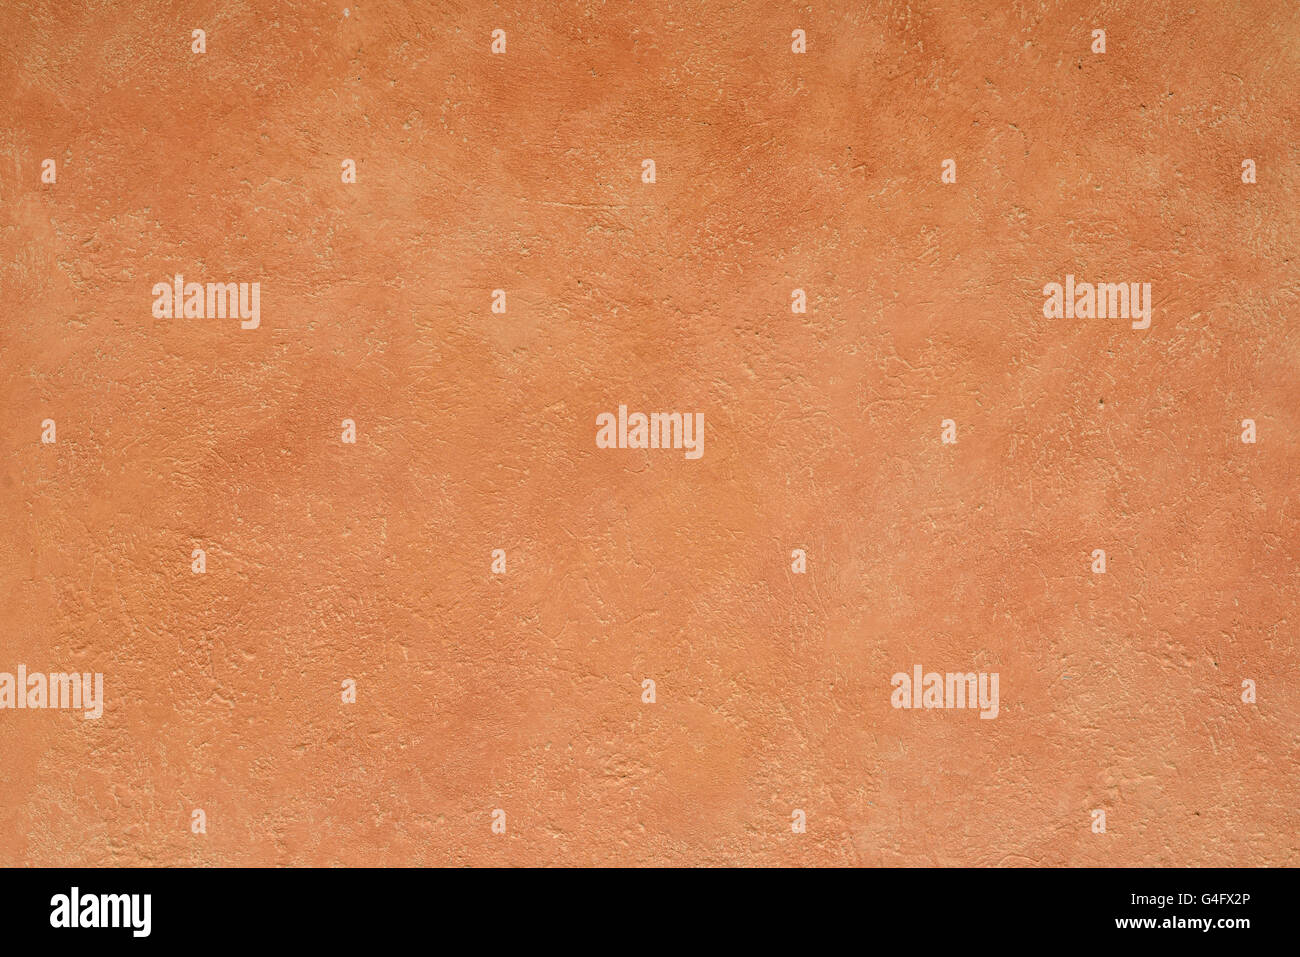 close up detail of rustic textured terracotta coloured stucco wall background Stock Photo